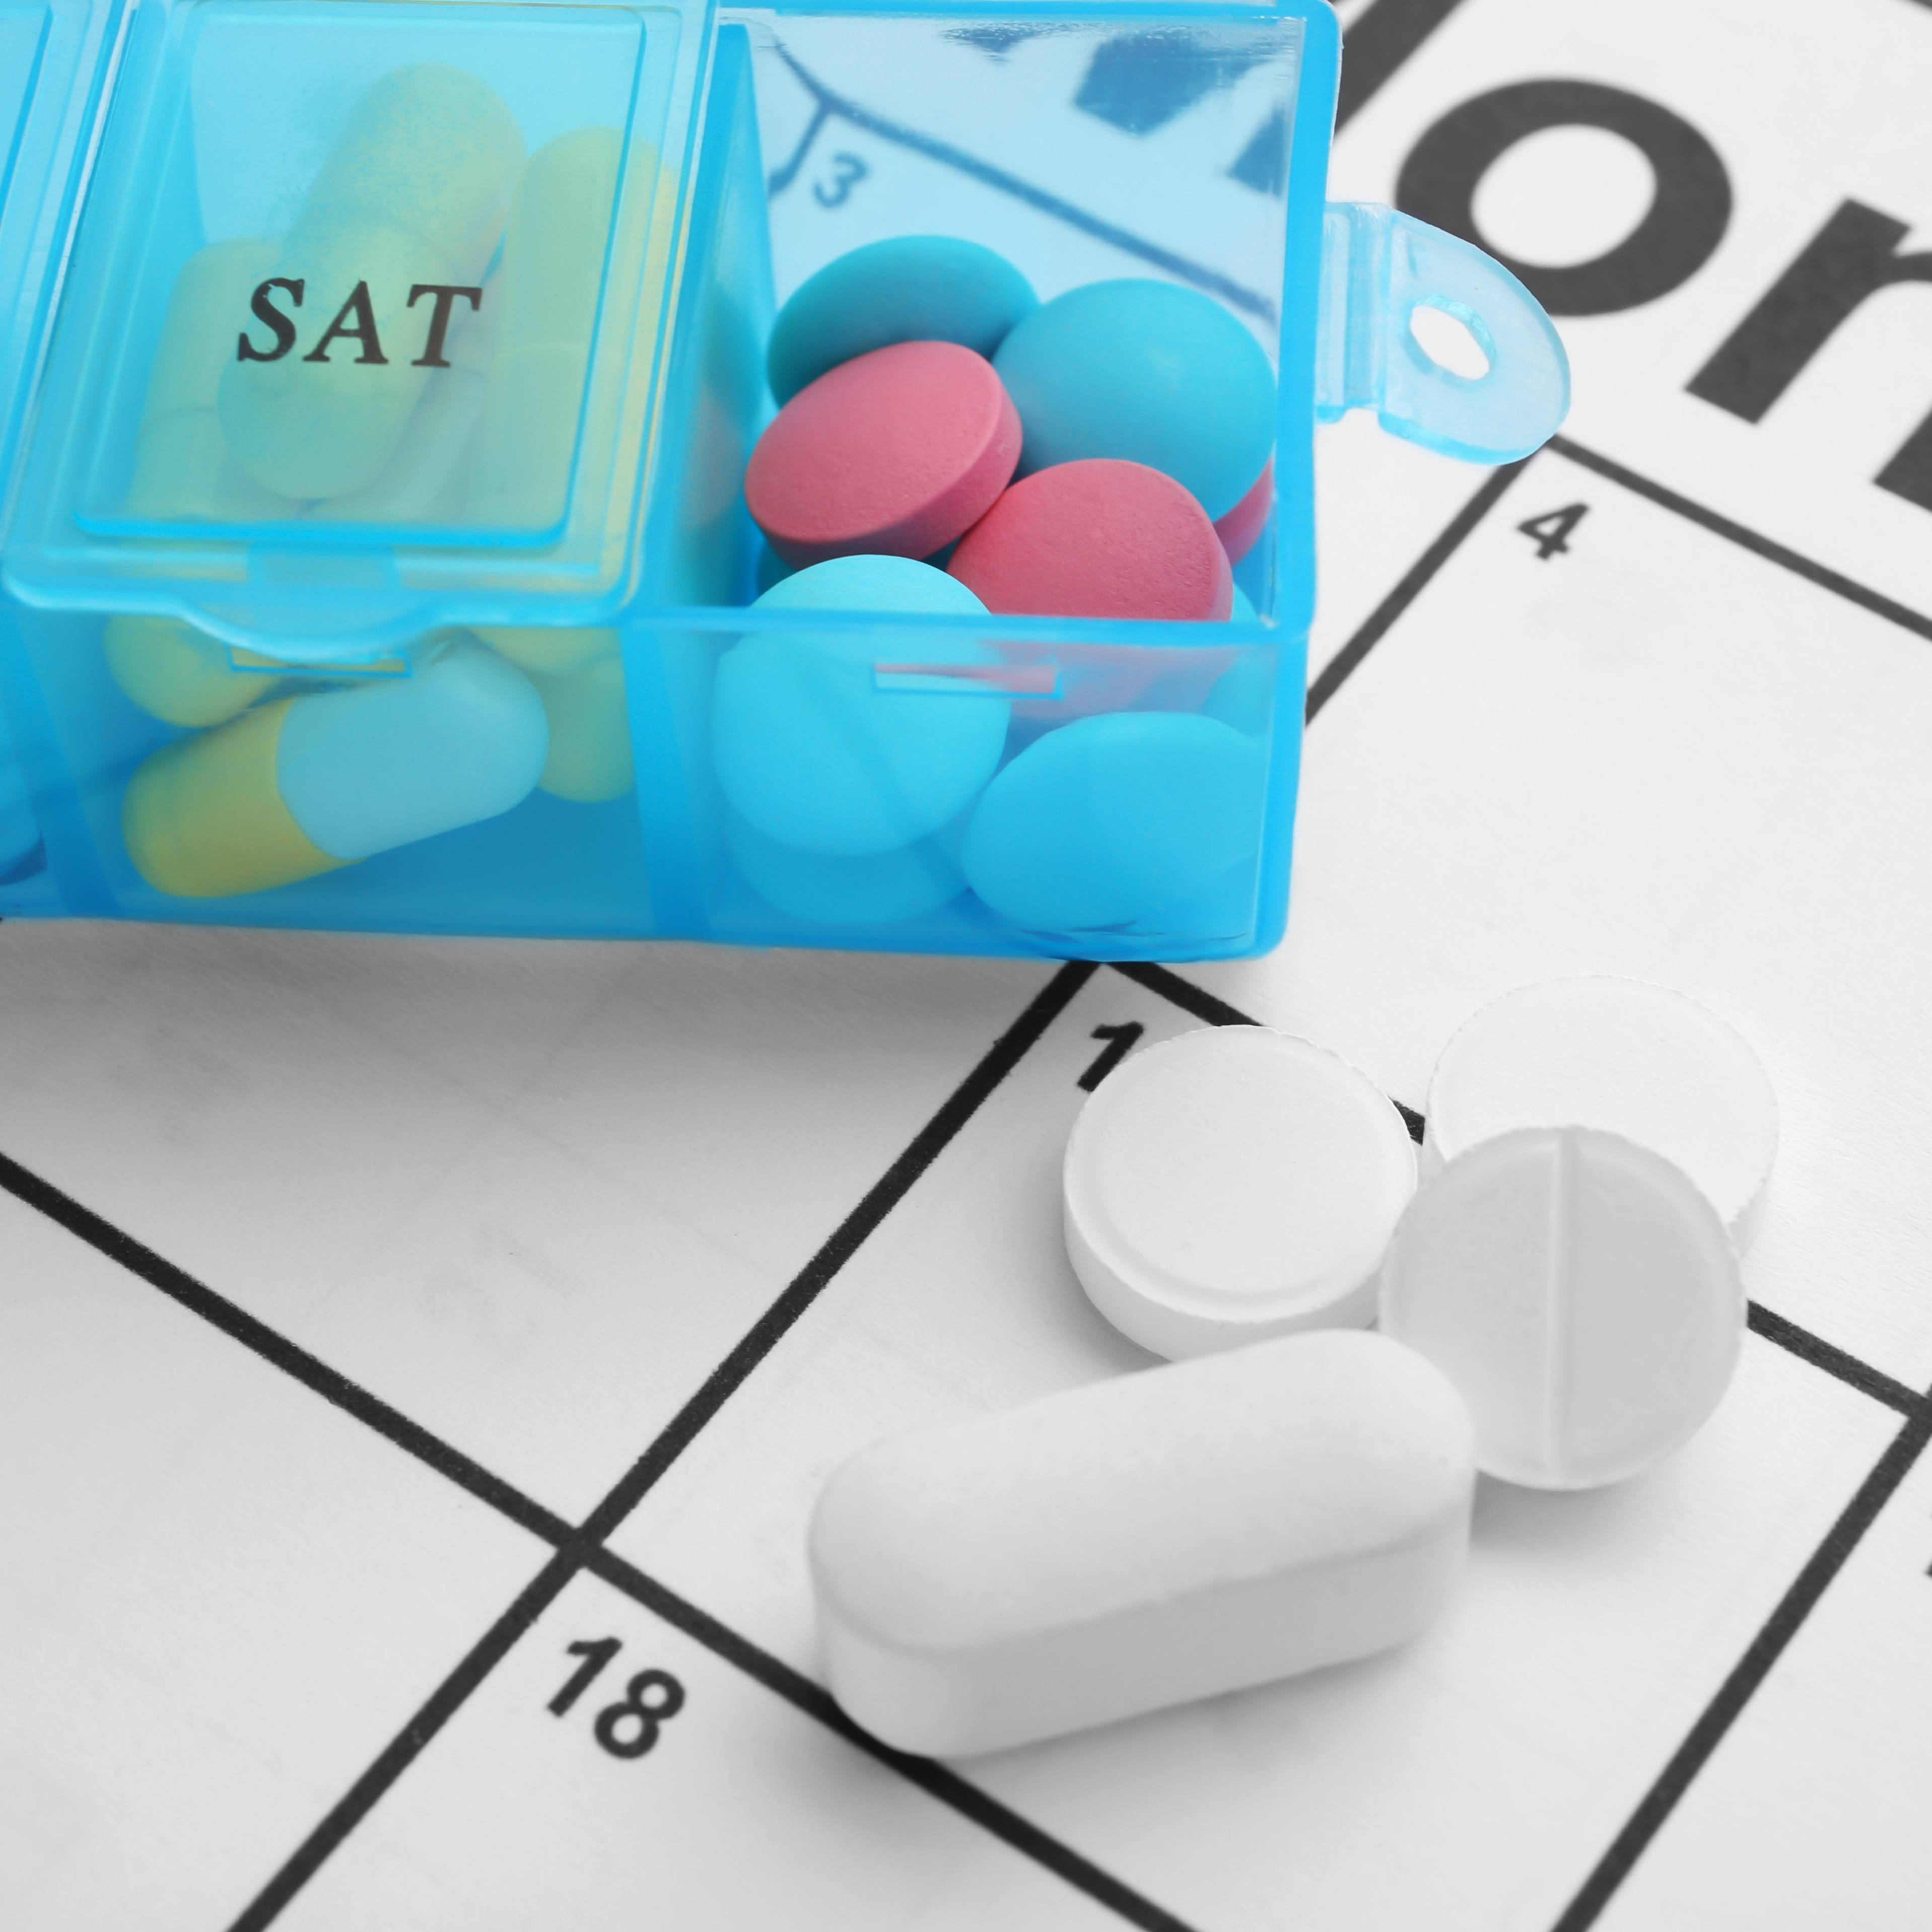 a pill box with different medicine tablets resting on a calendar